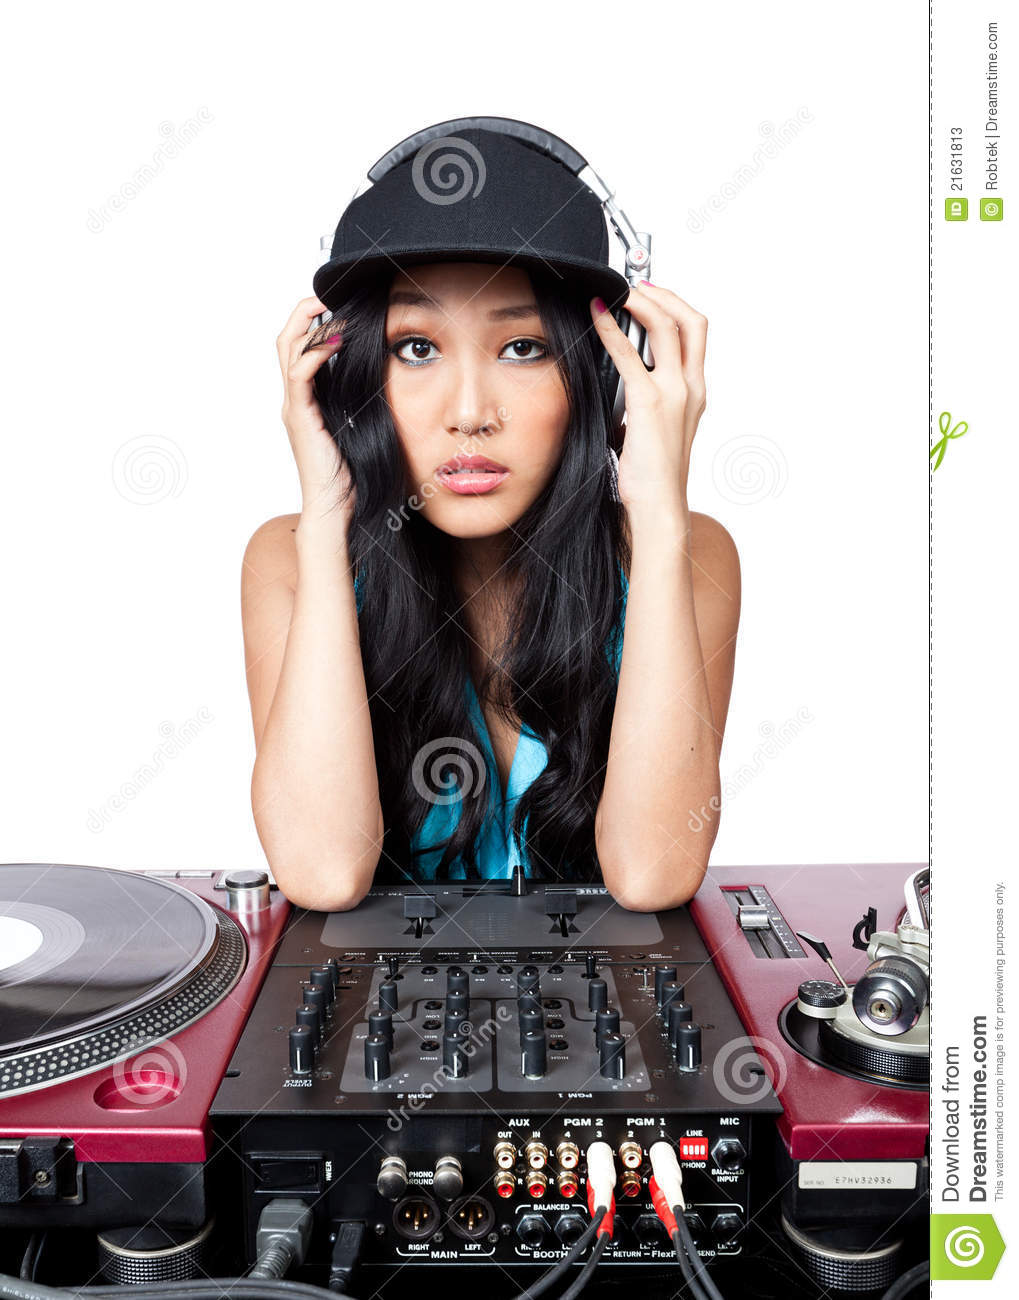 young female Asian DJ posing in for a photo in front of a mixer and ...